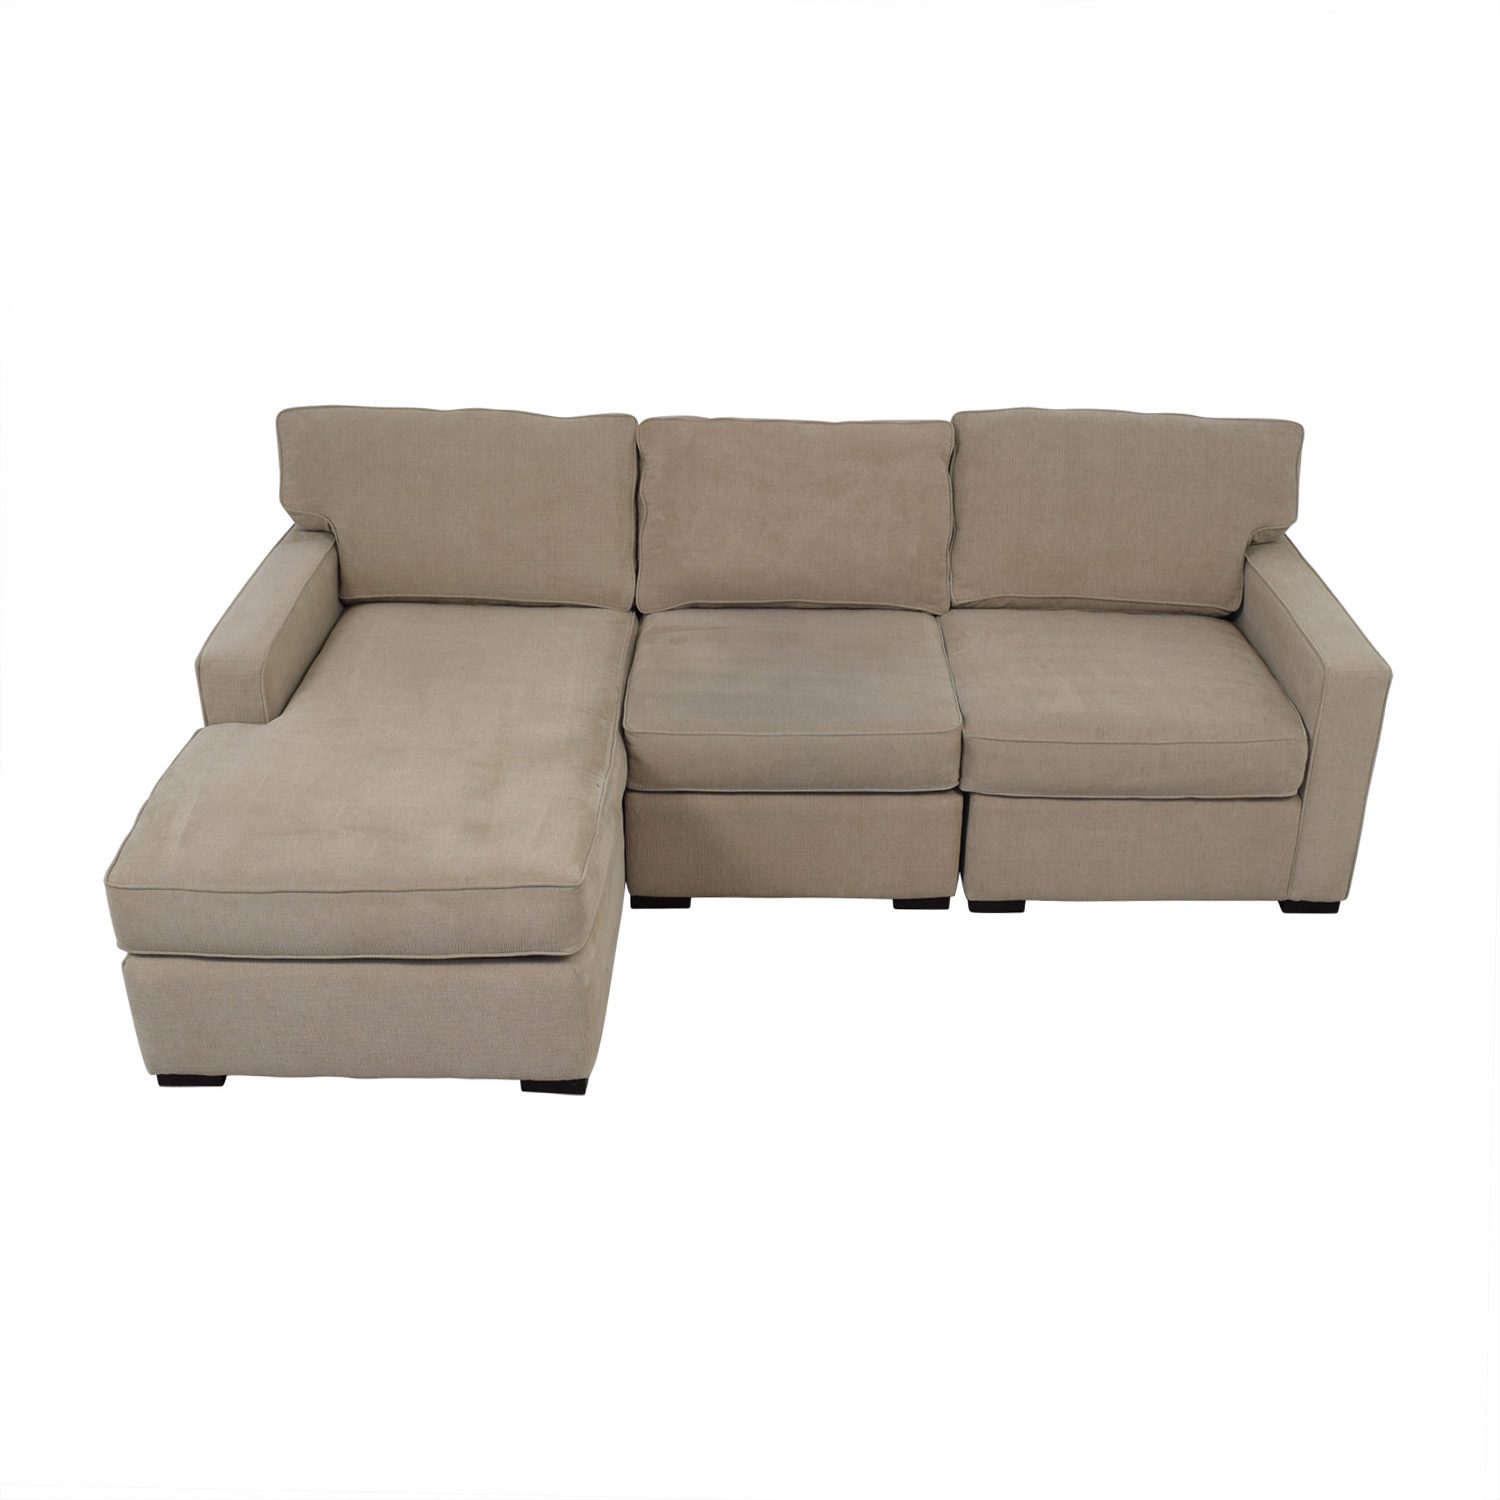 Macy's Beige Chaise Sectional / Sectionals